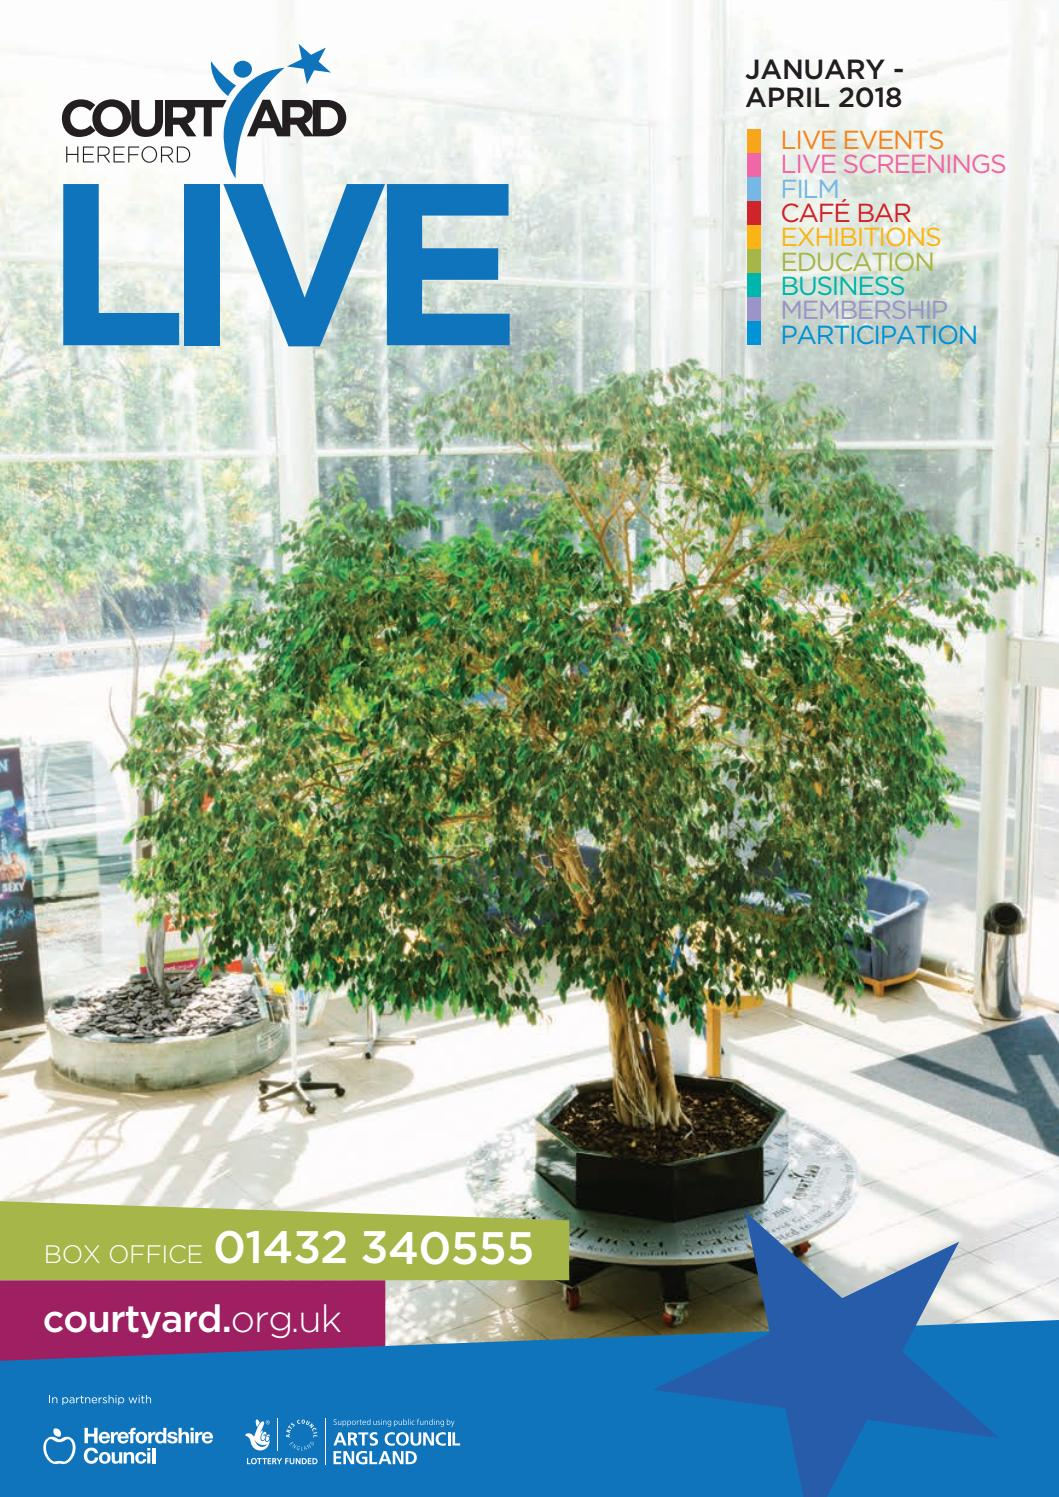 Courtyard Live Guide| January - April 2018 by Courtyard Arts - issuu